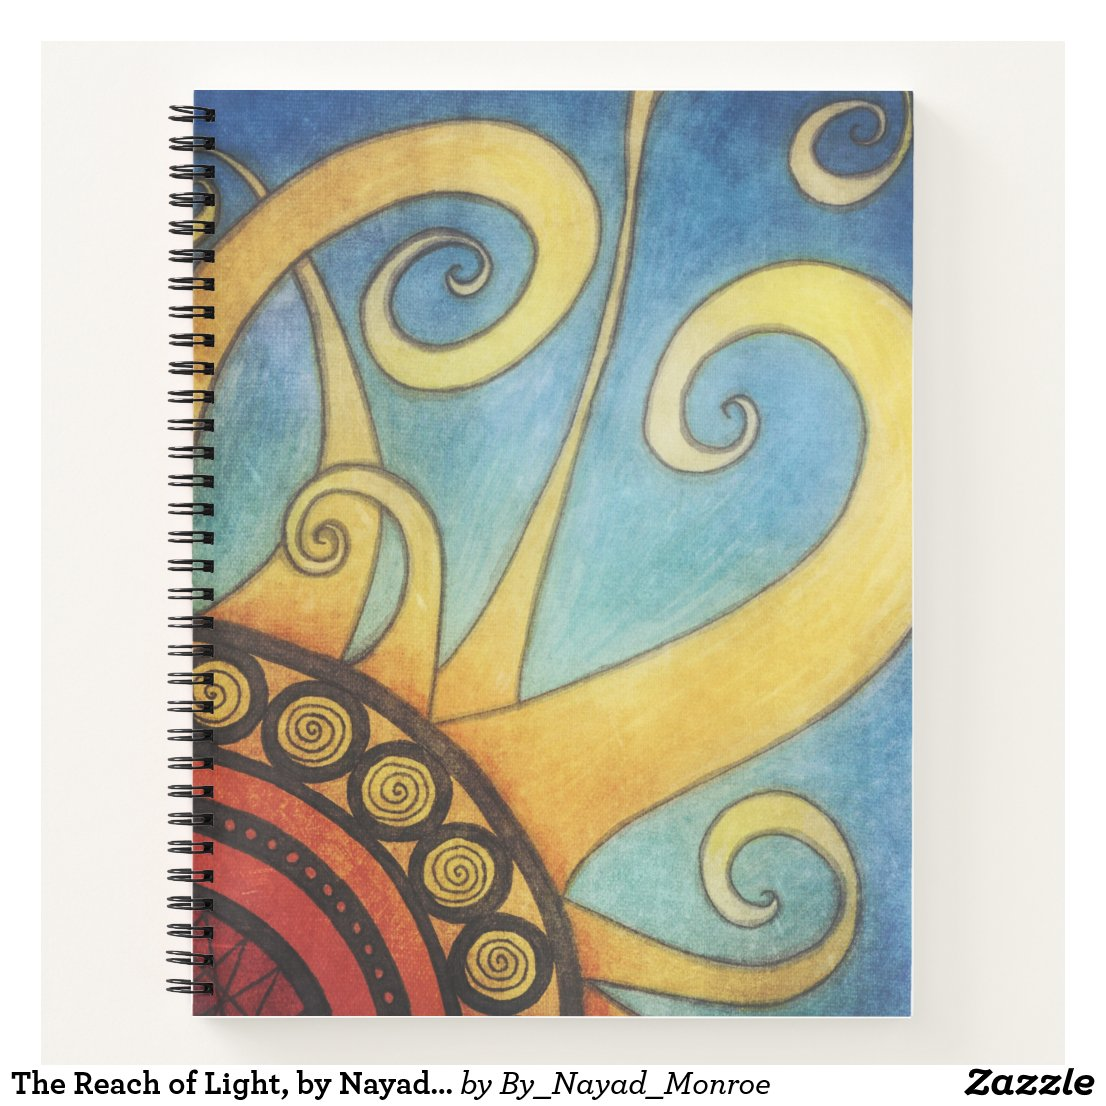 The Reach of Light, by Nayad Monroe Notebook